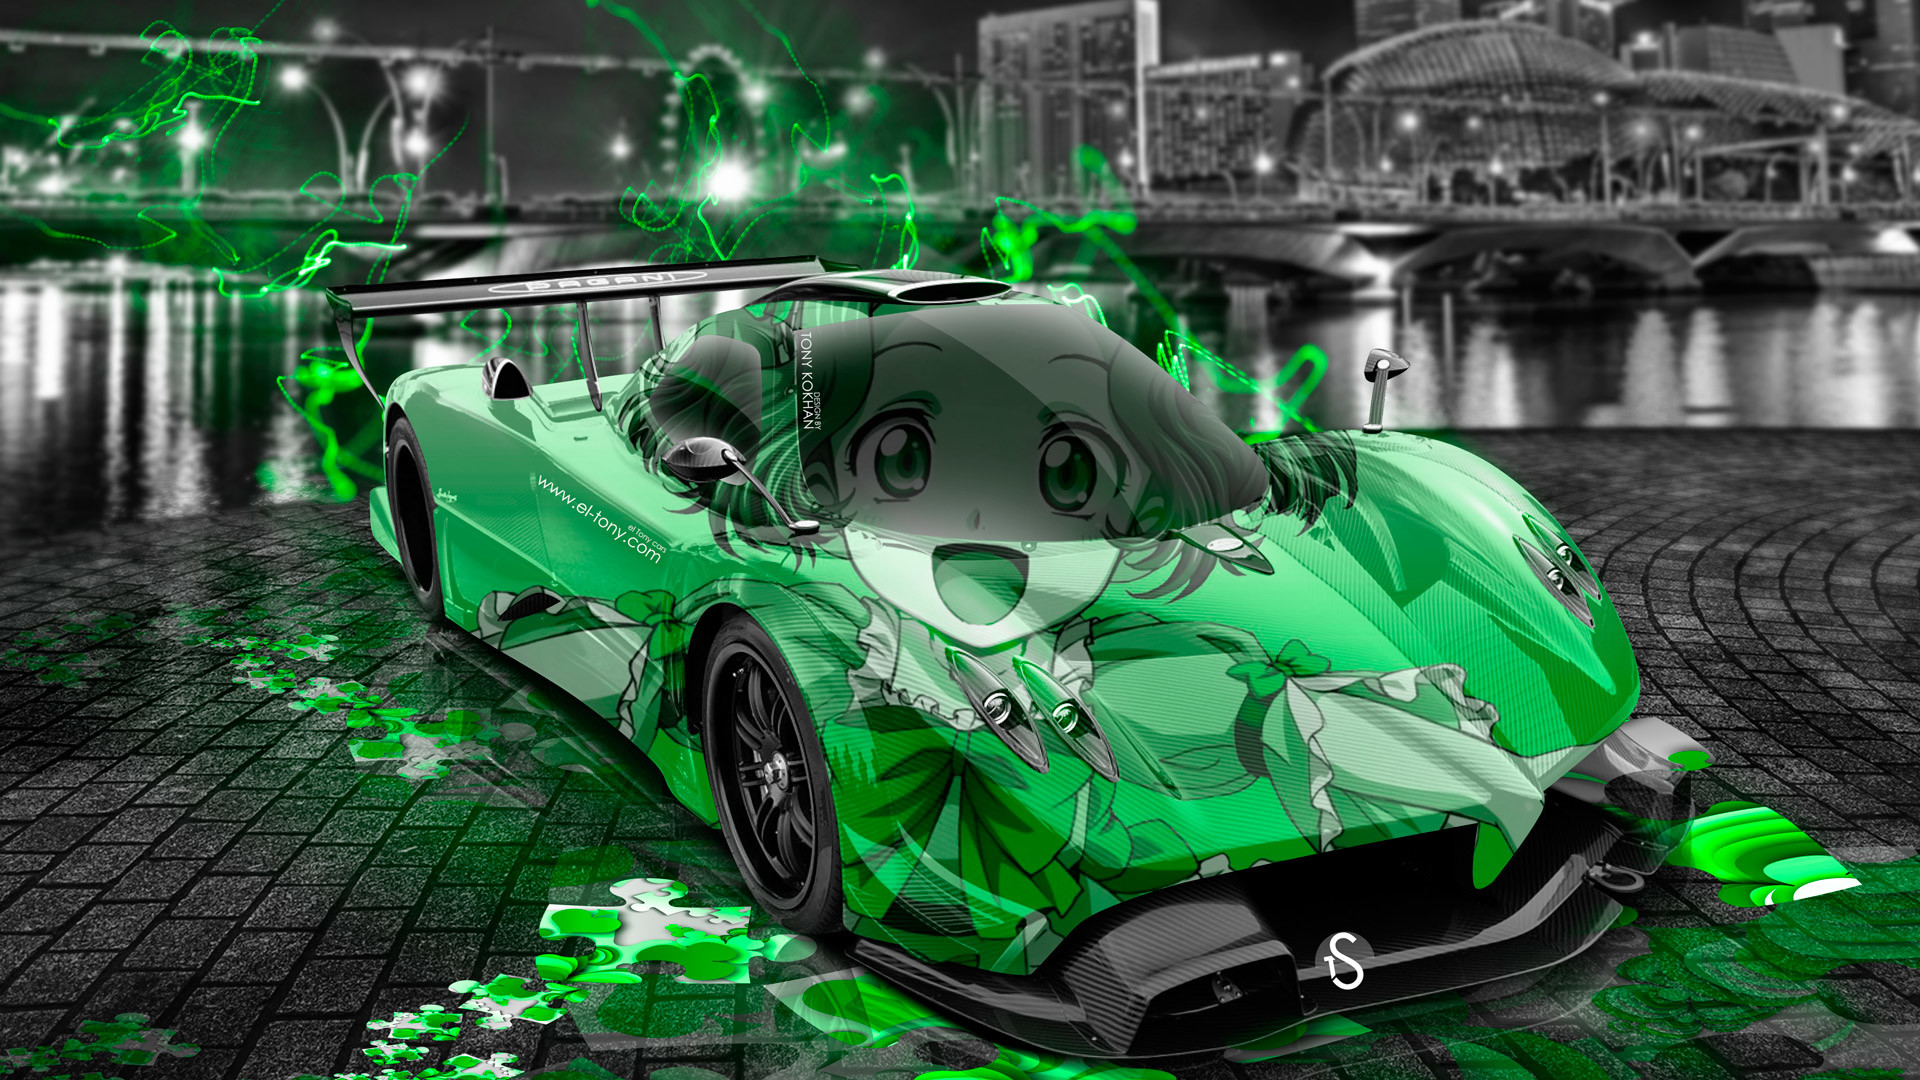 1920x1080 Pagani Zonda R Anime Aerography Girl City Car .